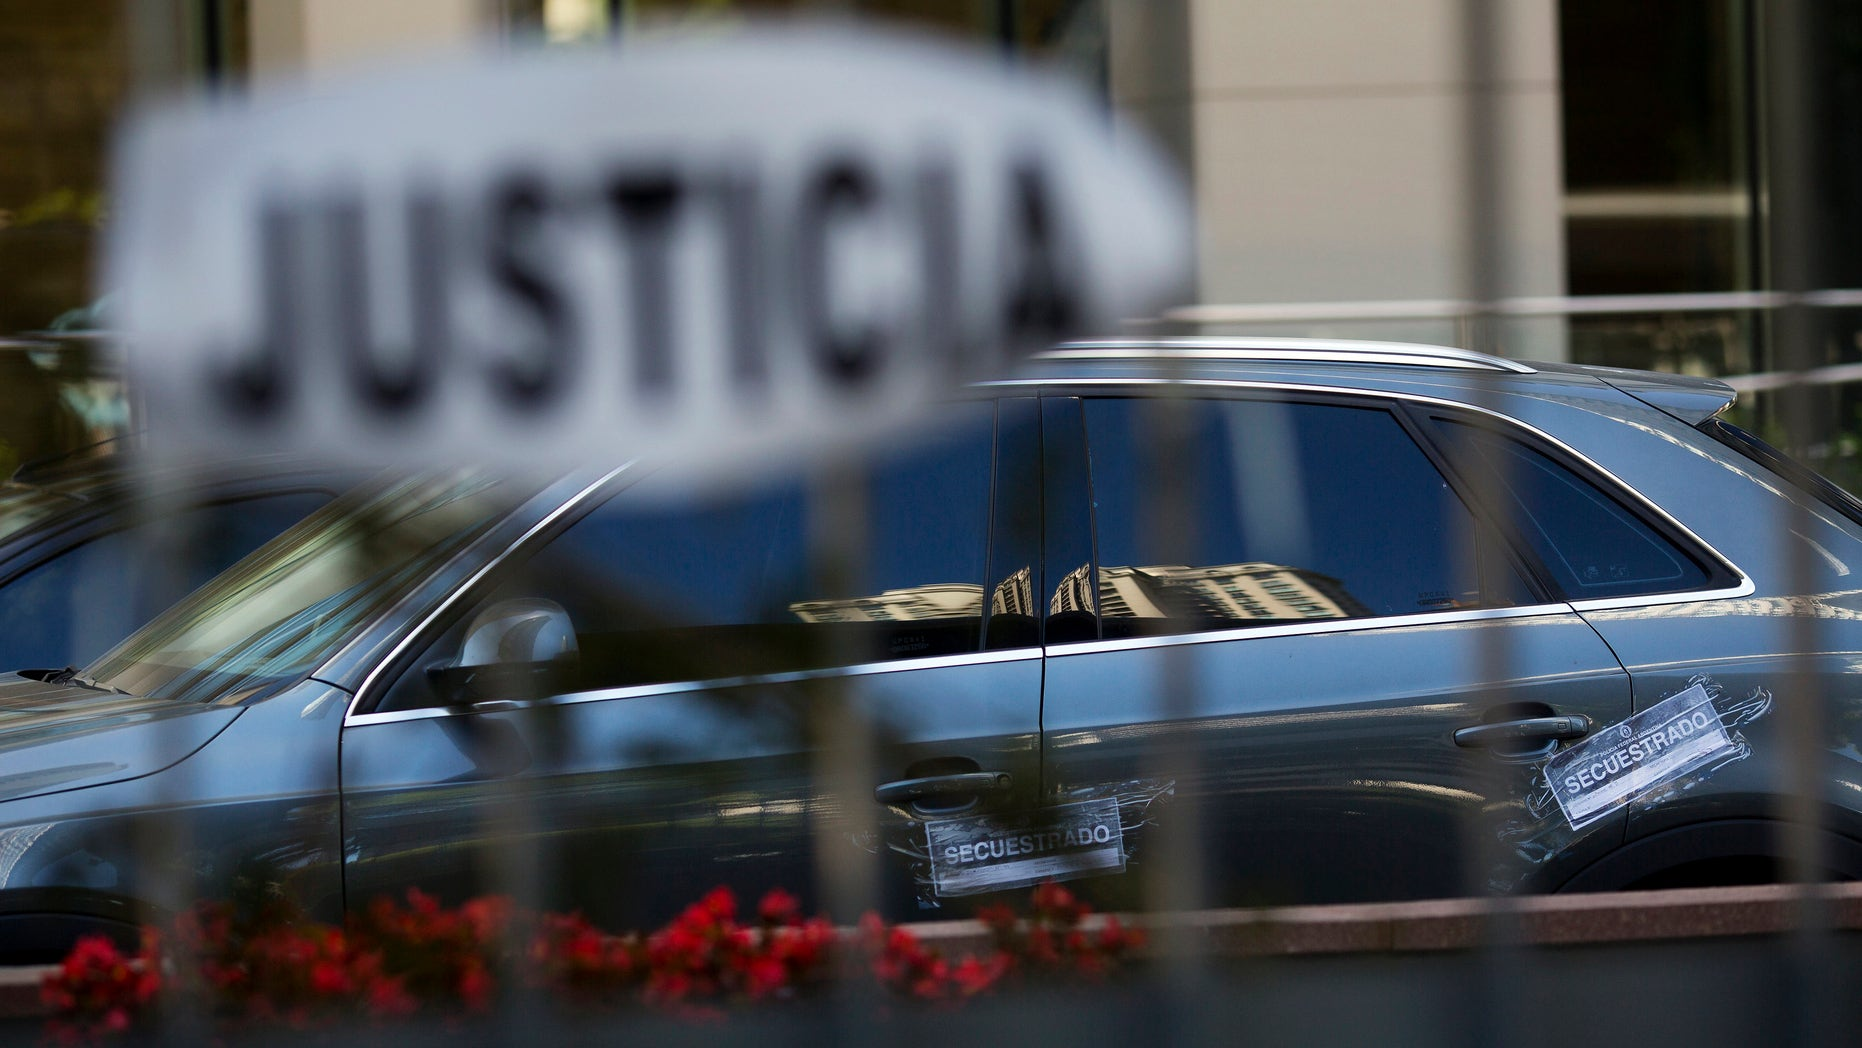 Vehicle impoundment notices are taped to the car of the late prosecutor Alberto Nisman, parked at Le Parc Tower, where Nisman lived on the 13th floor of the luxury condo, in Buenos Aires, Argentina, Thursday, Jan. 22, 2015. Argentine President Cristina Fernandez made an about-face Thursday, saying she now is âconvincedâ that Nismanâs death was not a suicide just days after she suggested the man who accused her of a cover-up in the nationâs worst terrorist attack had killed himself. (AP Photo/Rodrigo Abd)